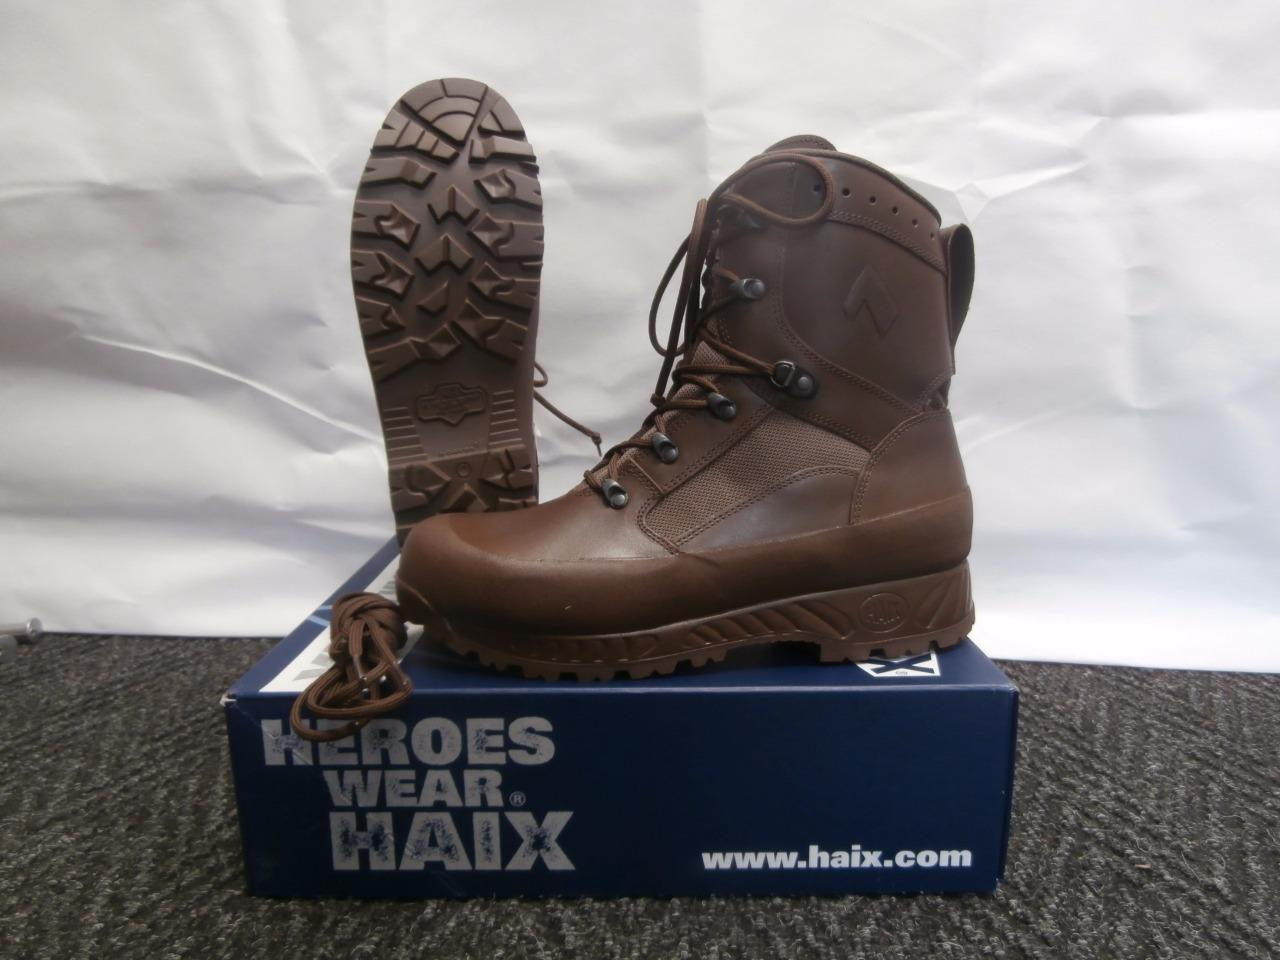 British Army Haix Brown Boots Goretex 174 Waterproof